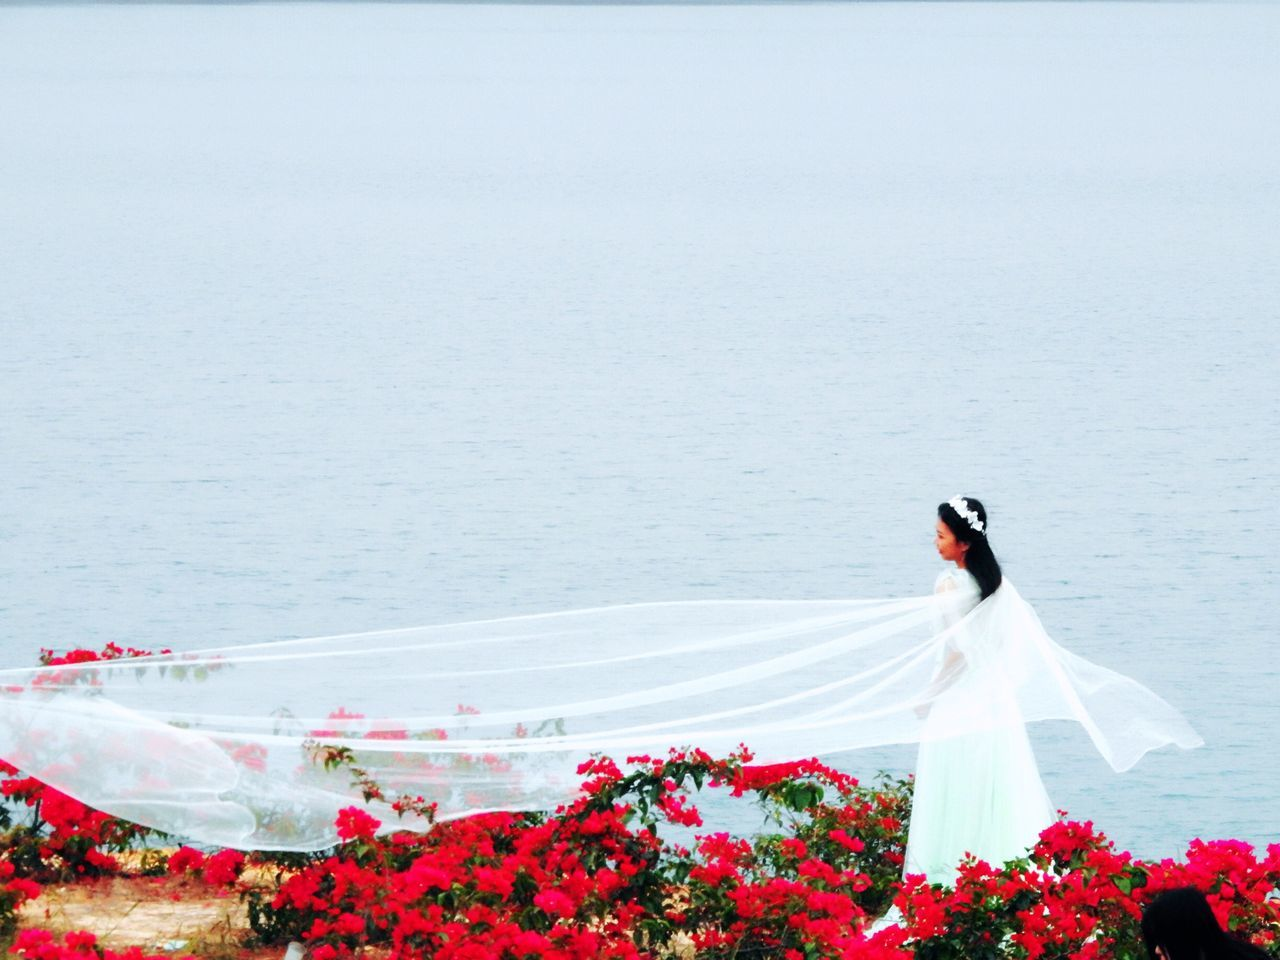 nature, water, beauty in nature, day, sea, wedding, flower, outdoors, no people, wedding dress